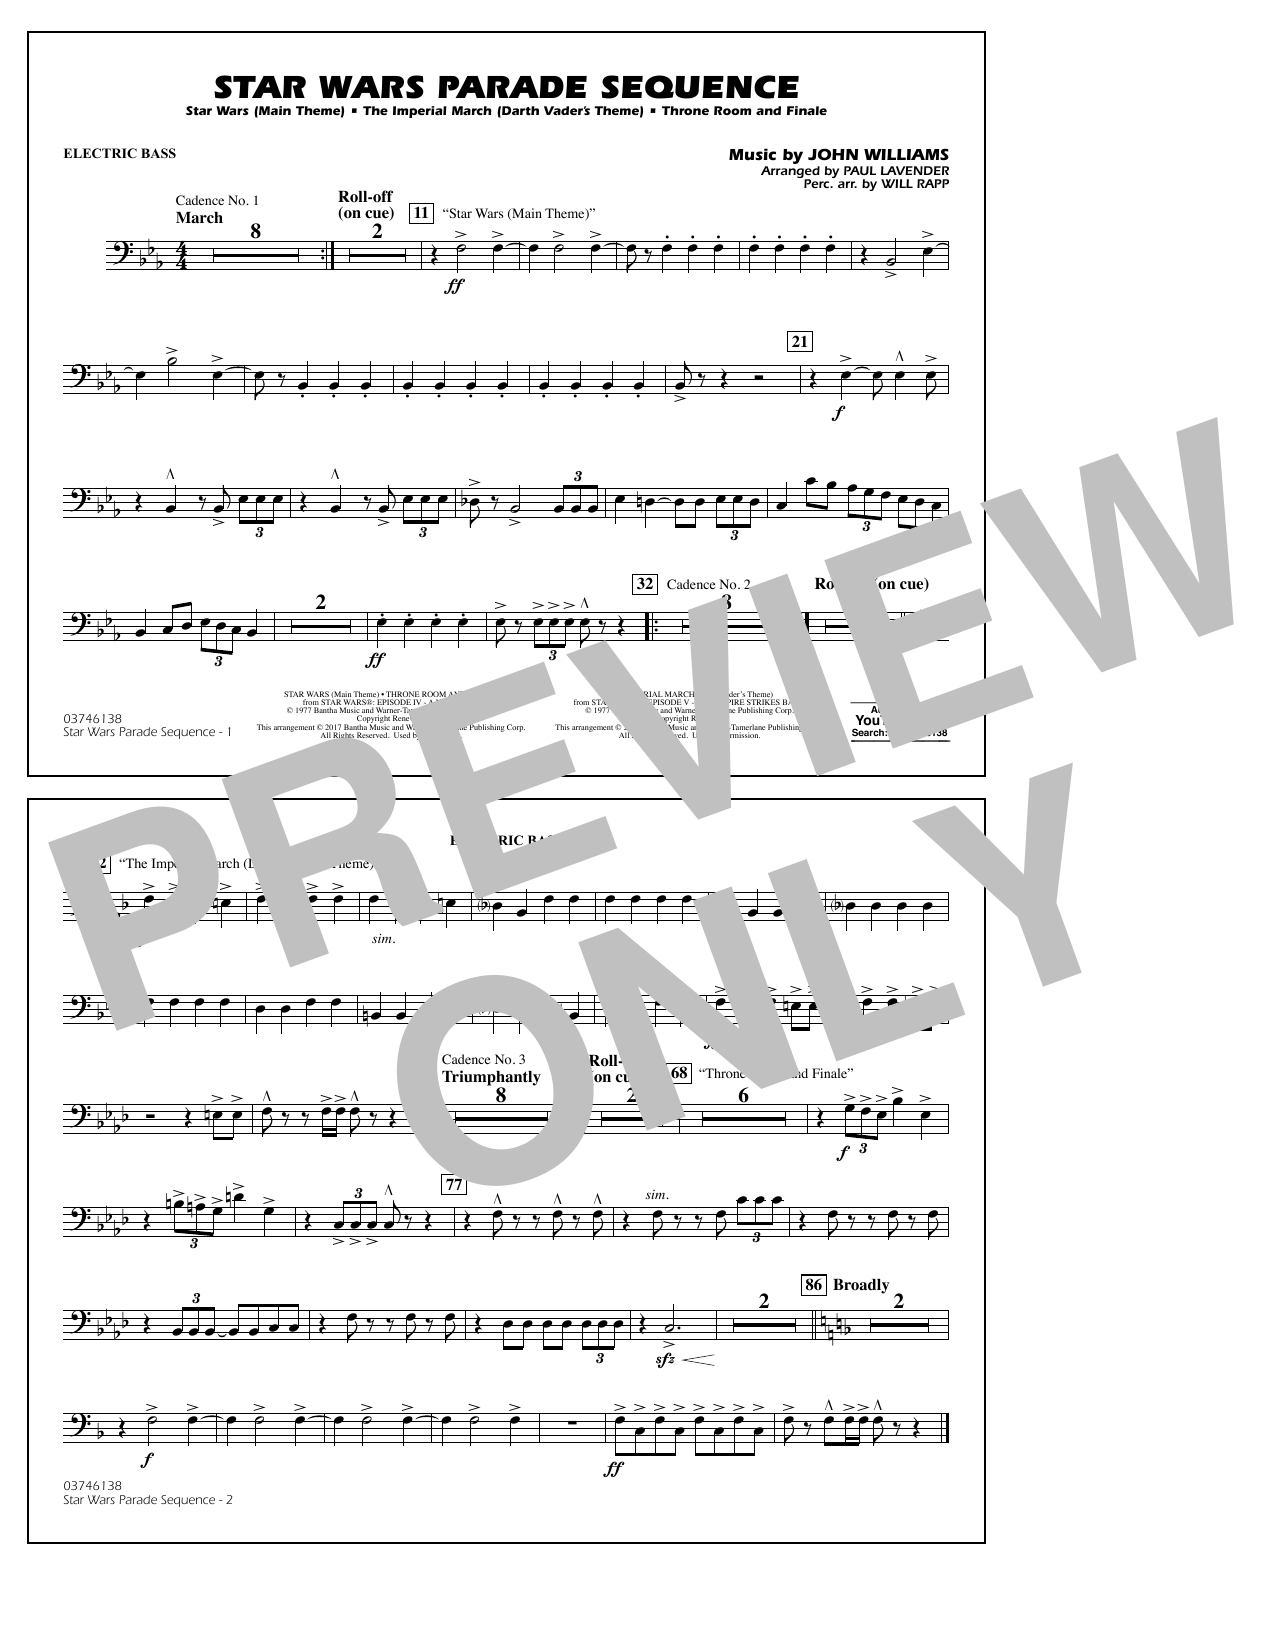 Paul Lavender Star Wars Parade Sequence - Electric Bass sheet music notes and chords